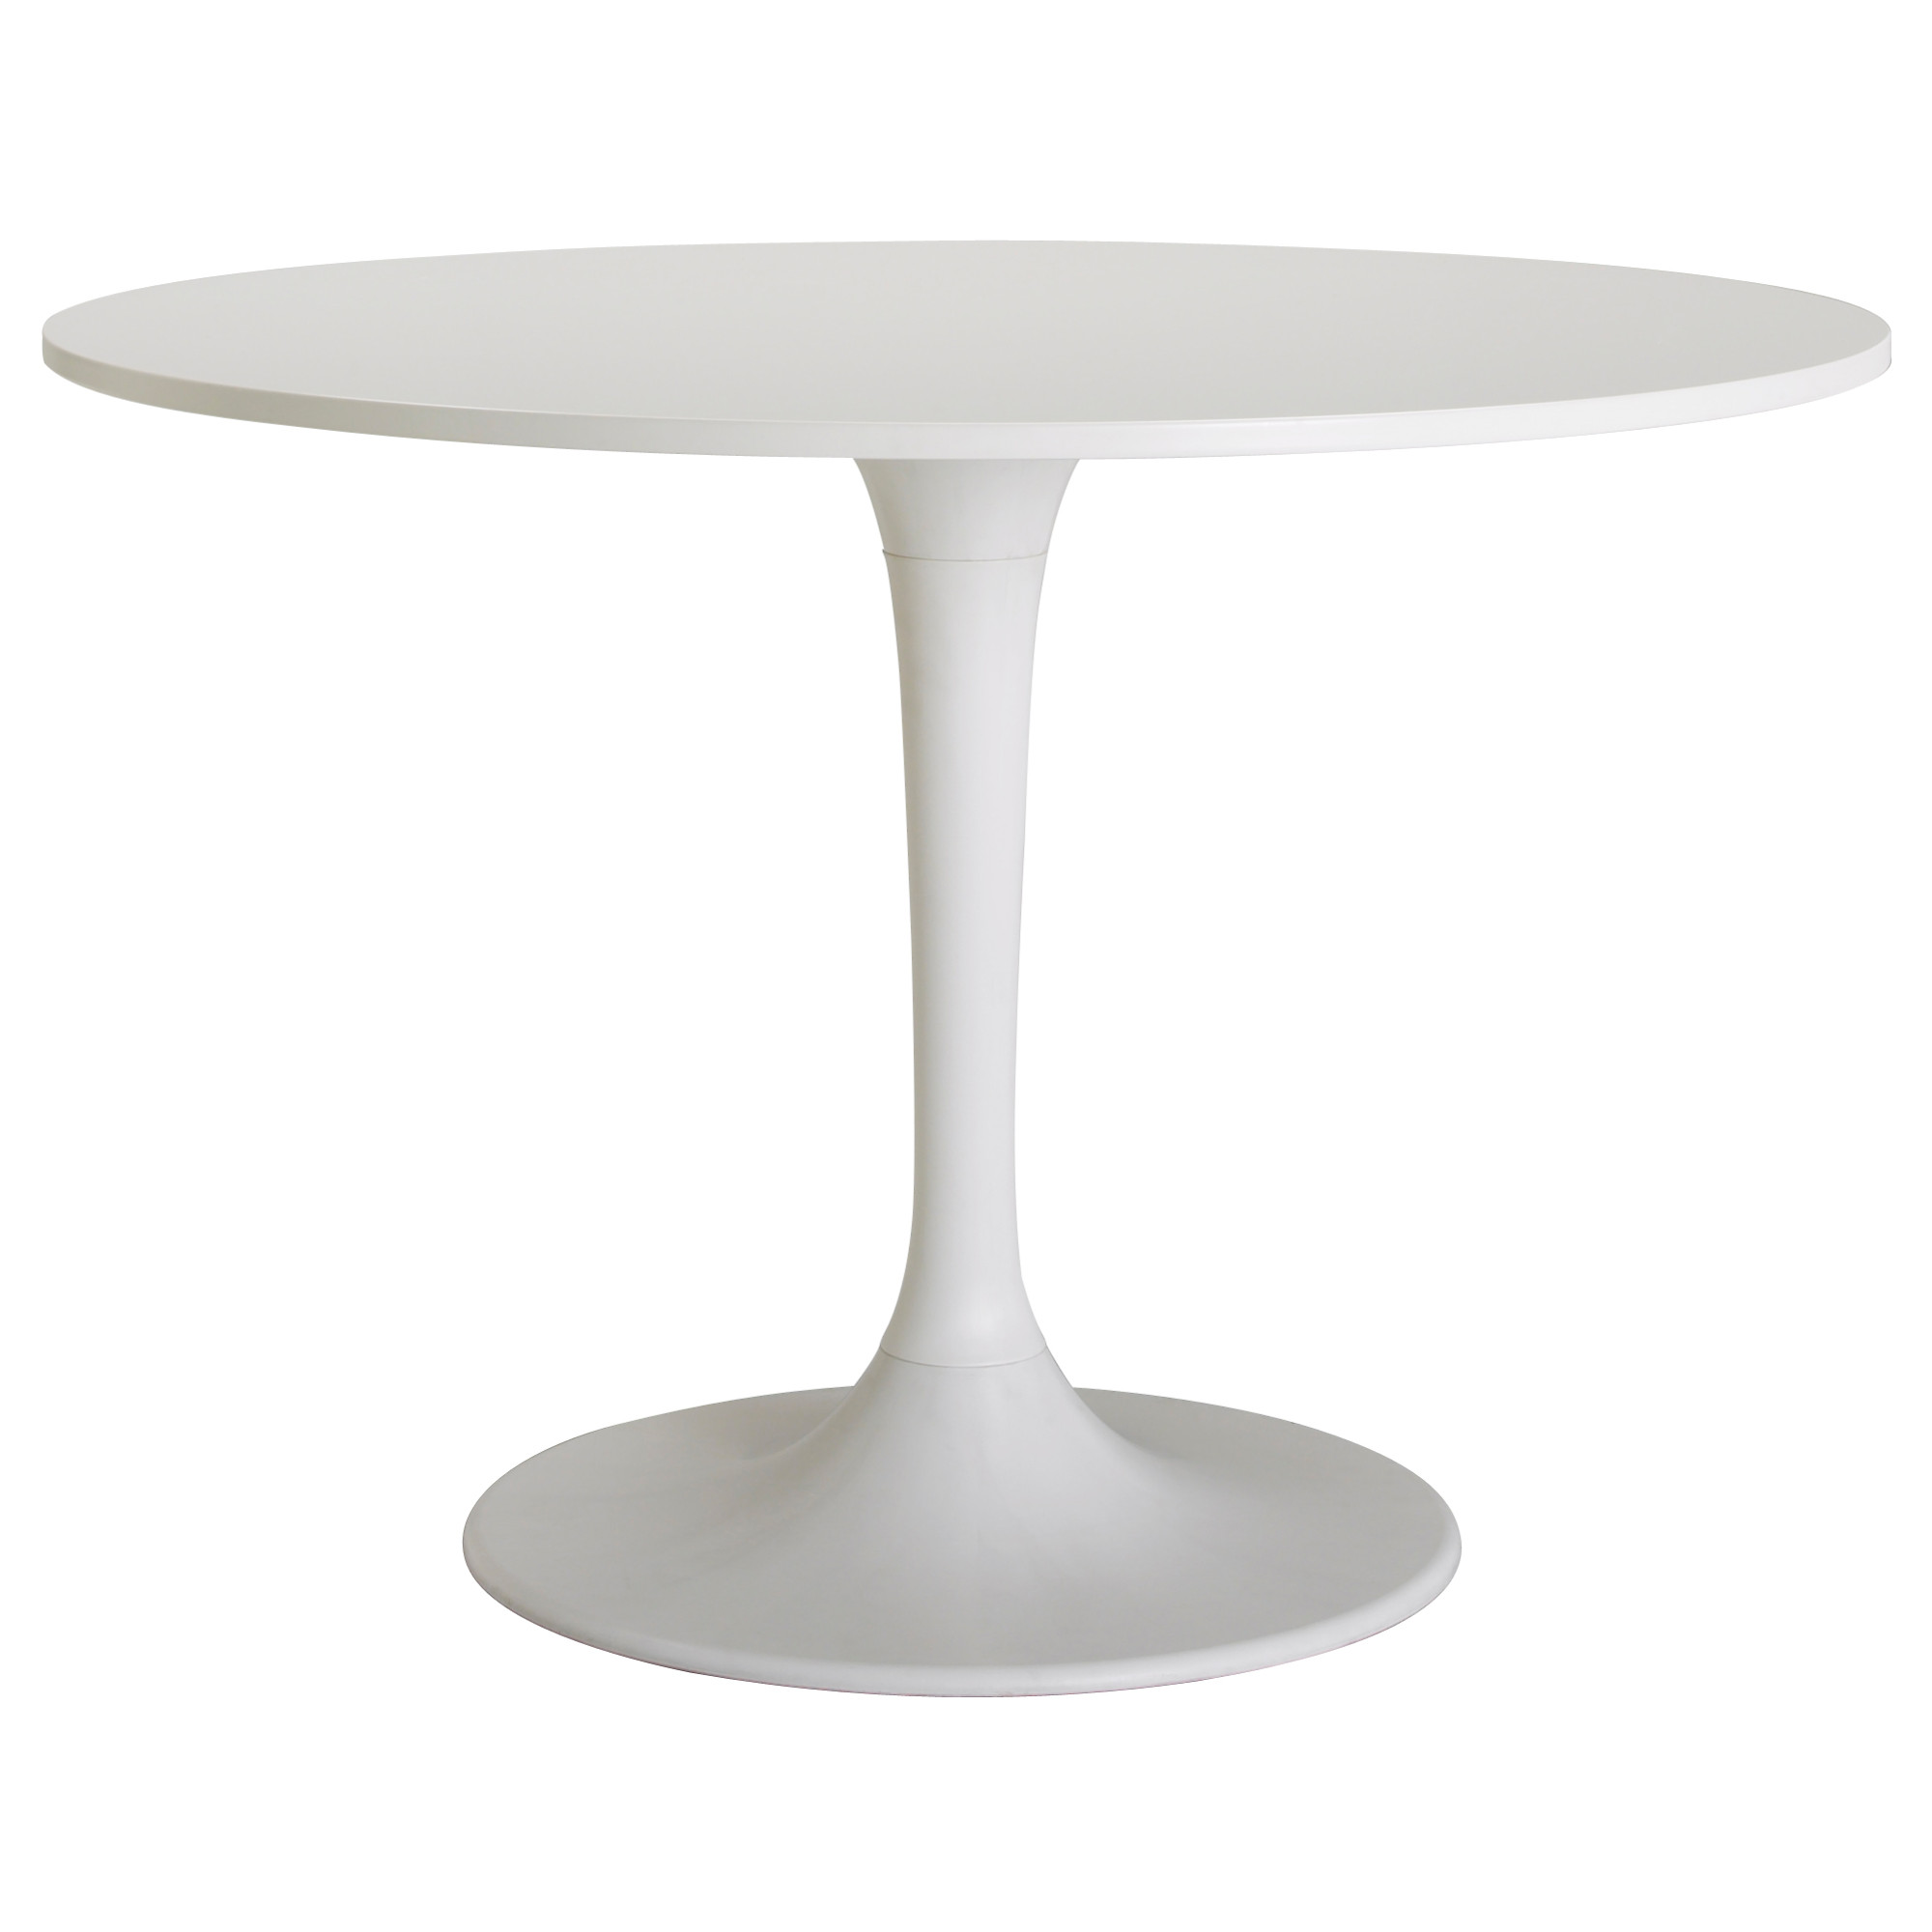 White round kitchen table and chairs design homesfeed for White table design